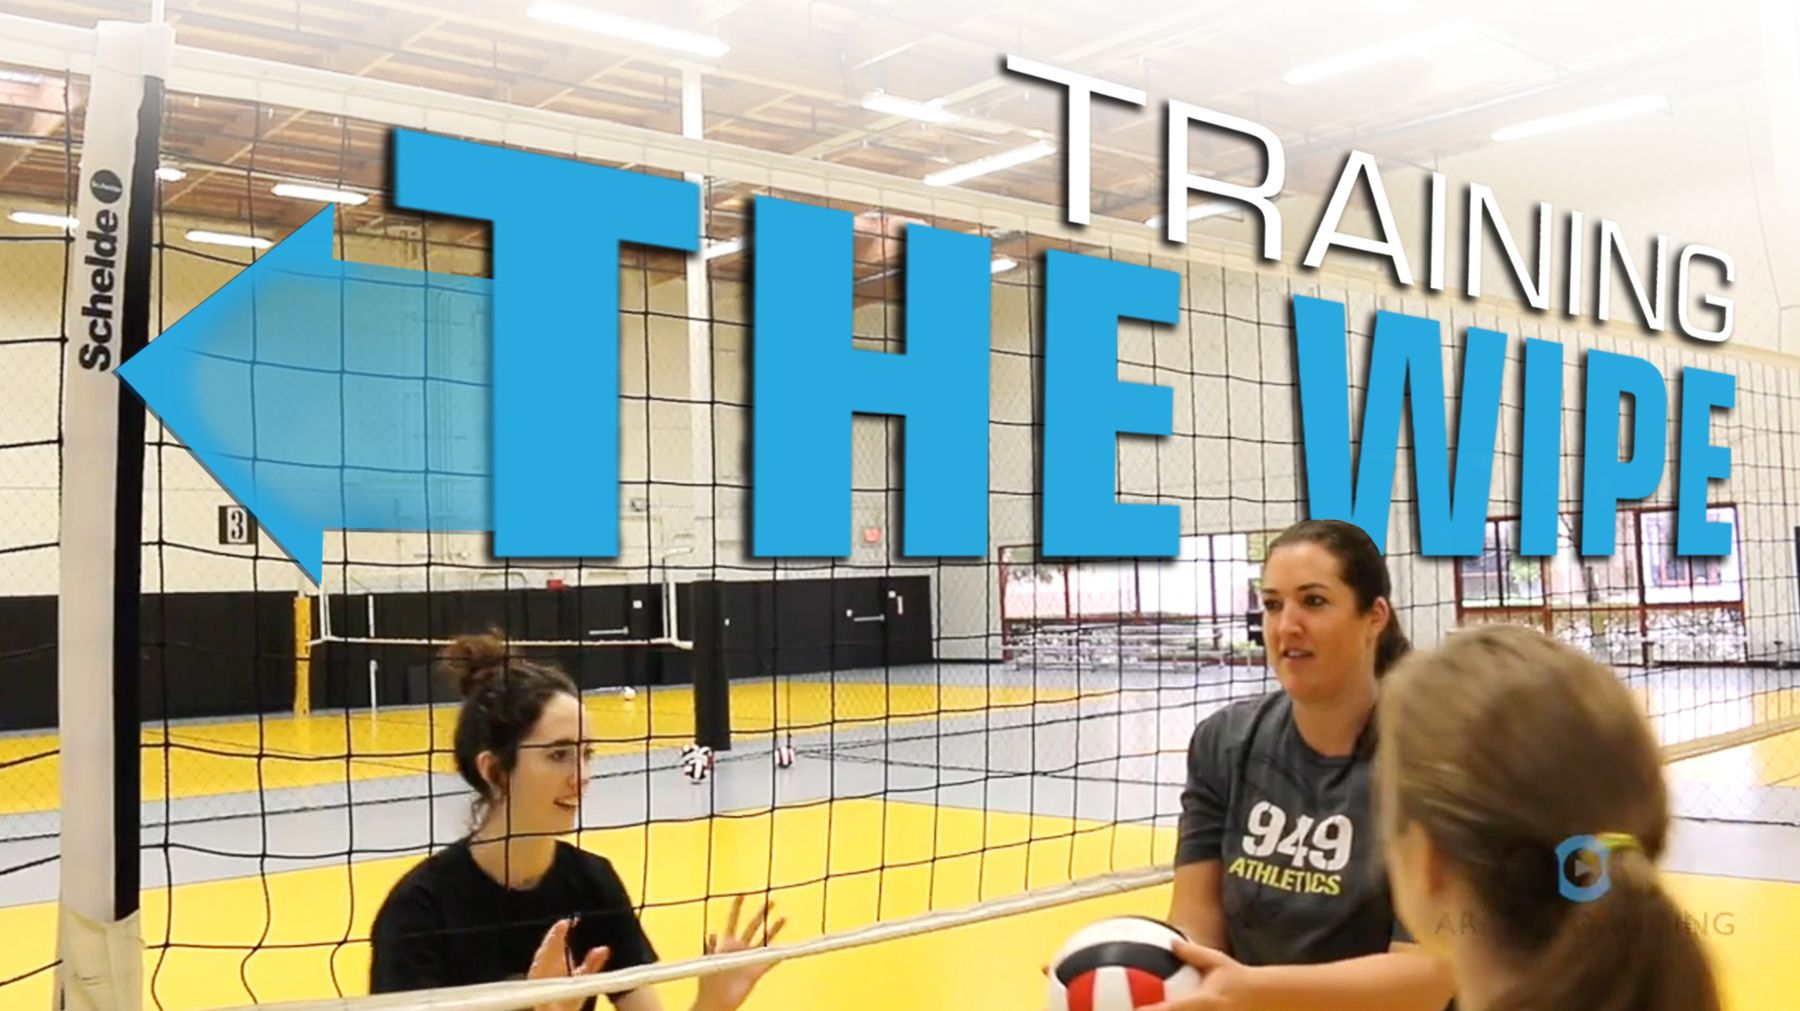 Training The Wipe Volleyball Training Coaching Volleyball Volleyball Tips